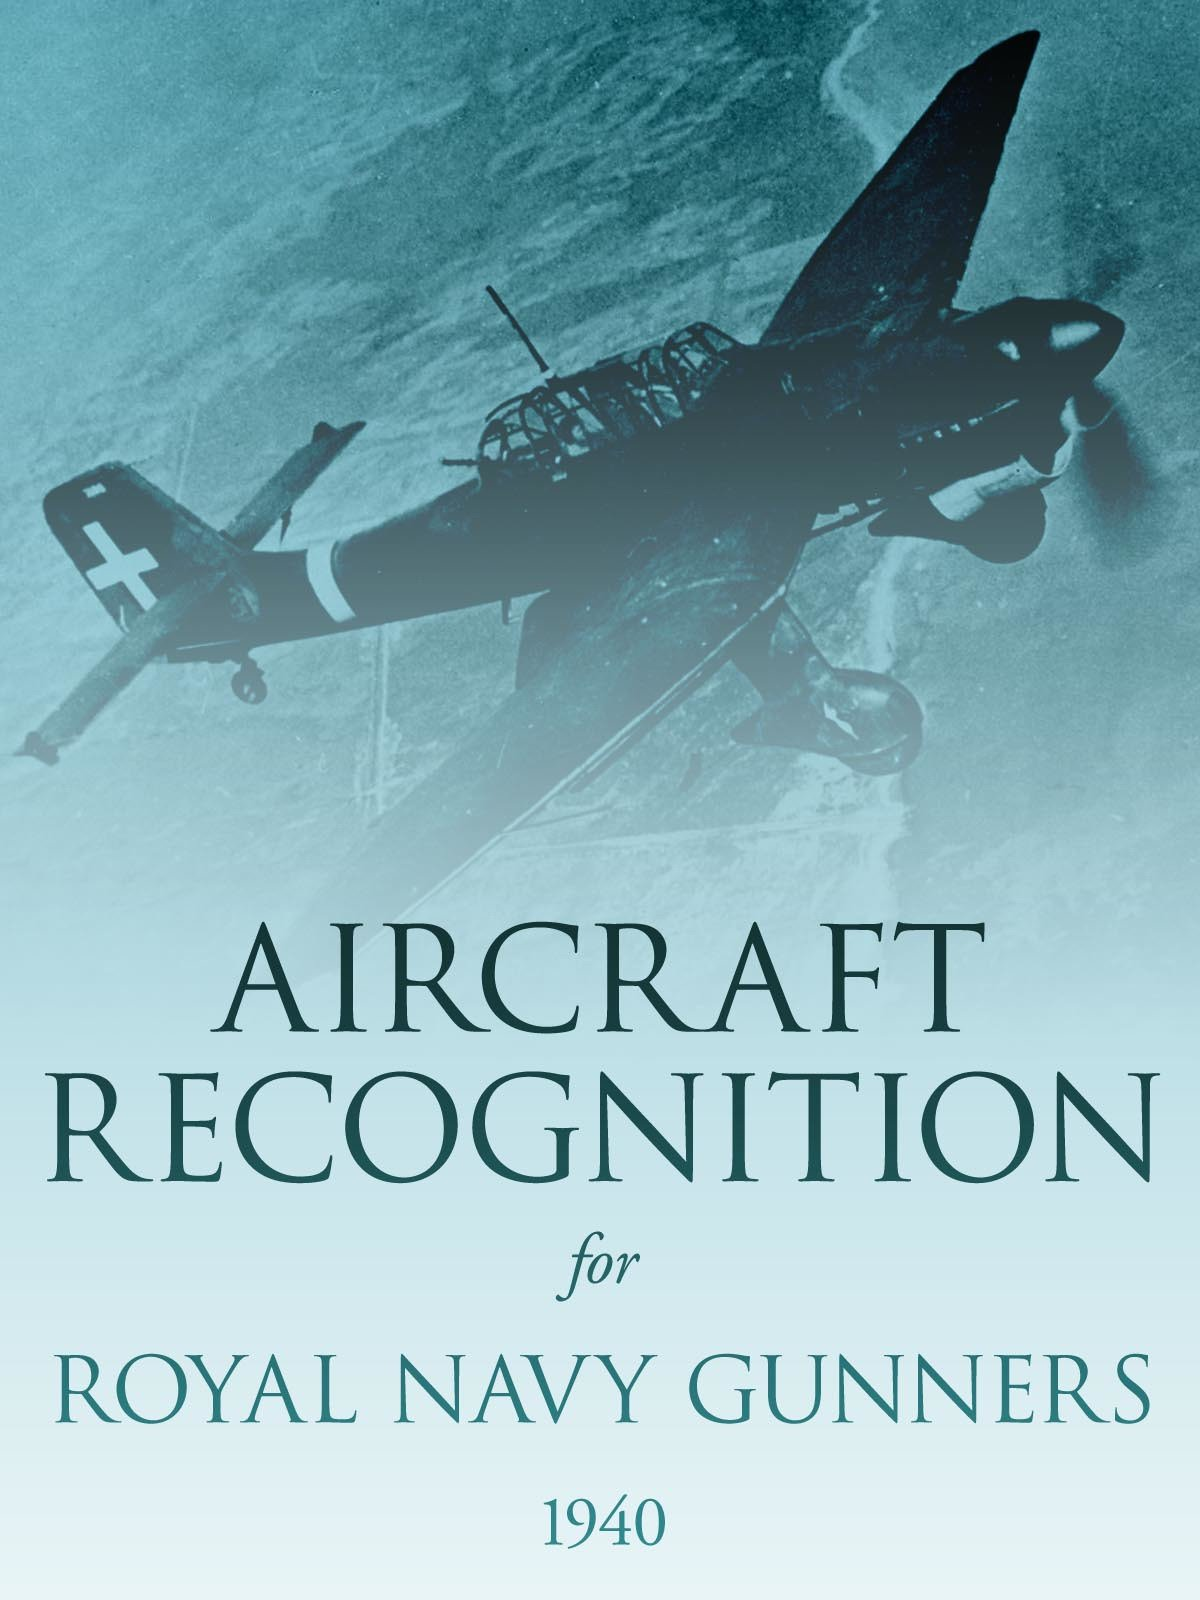 Aircraft Recognition for Royal Navy Gunners